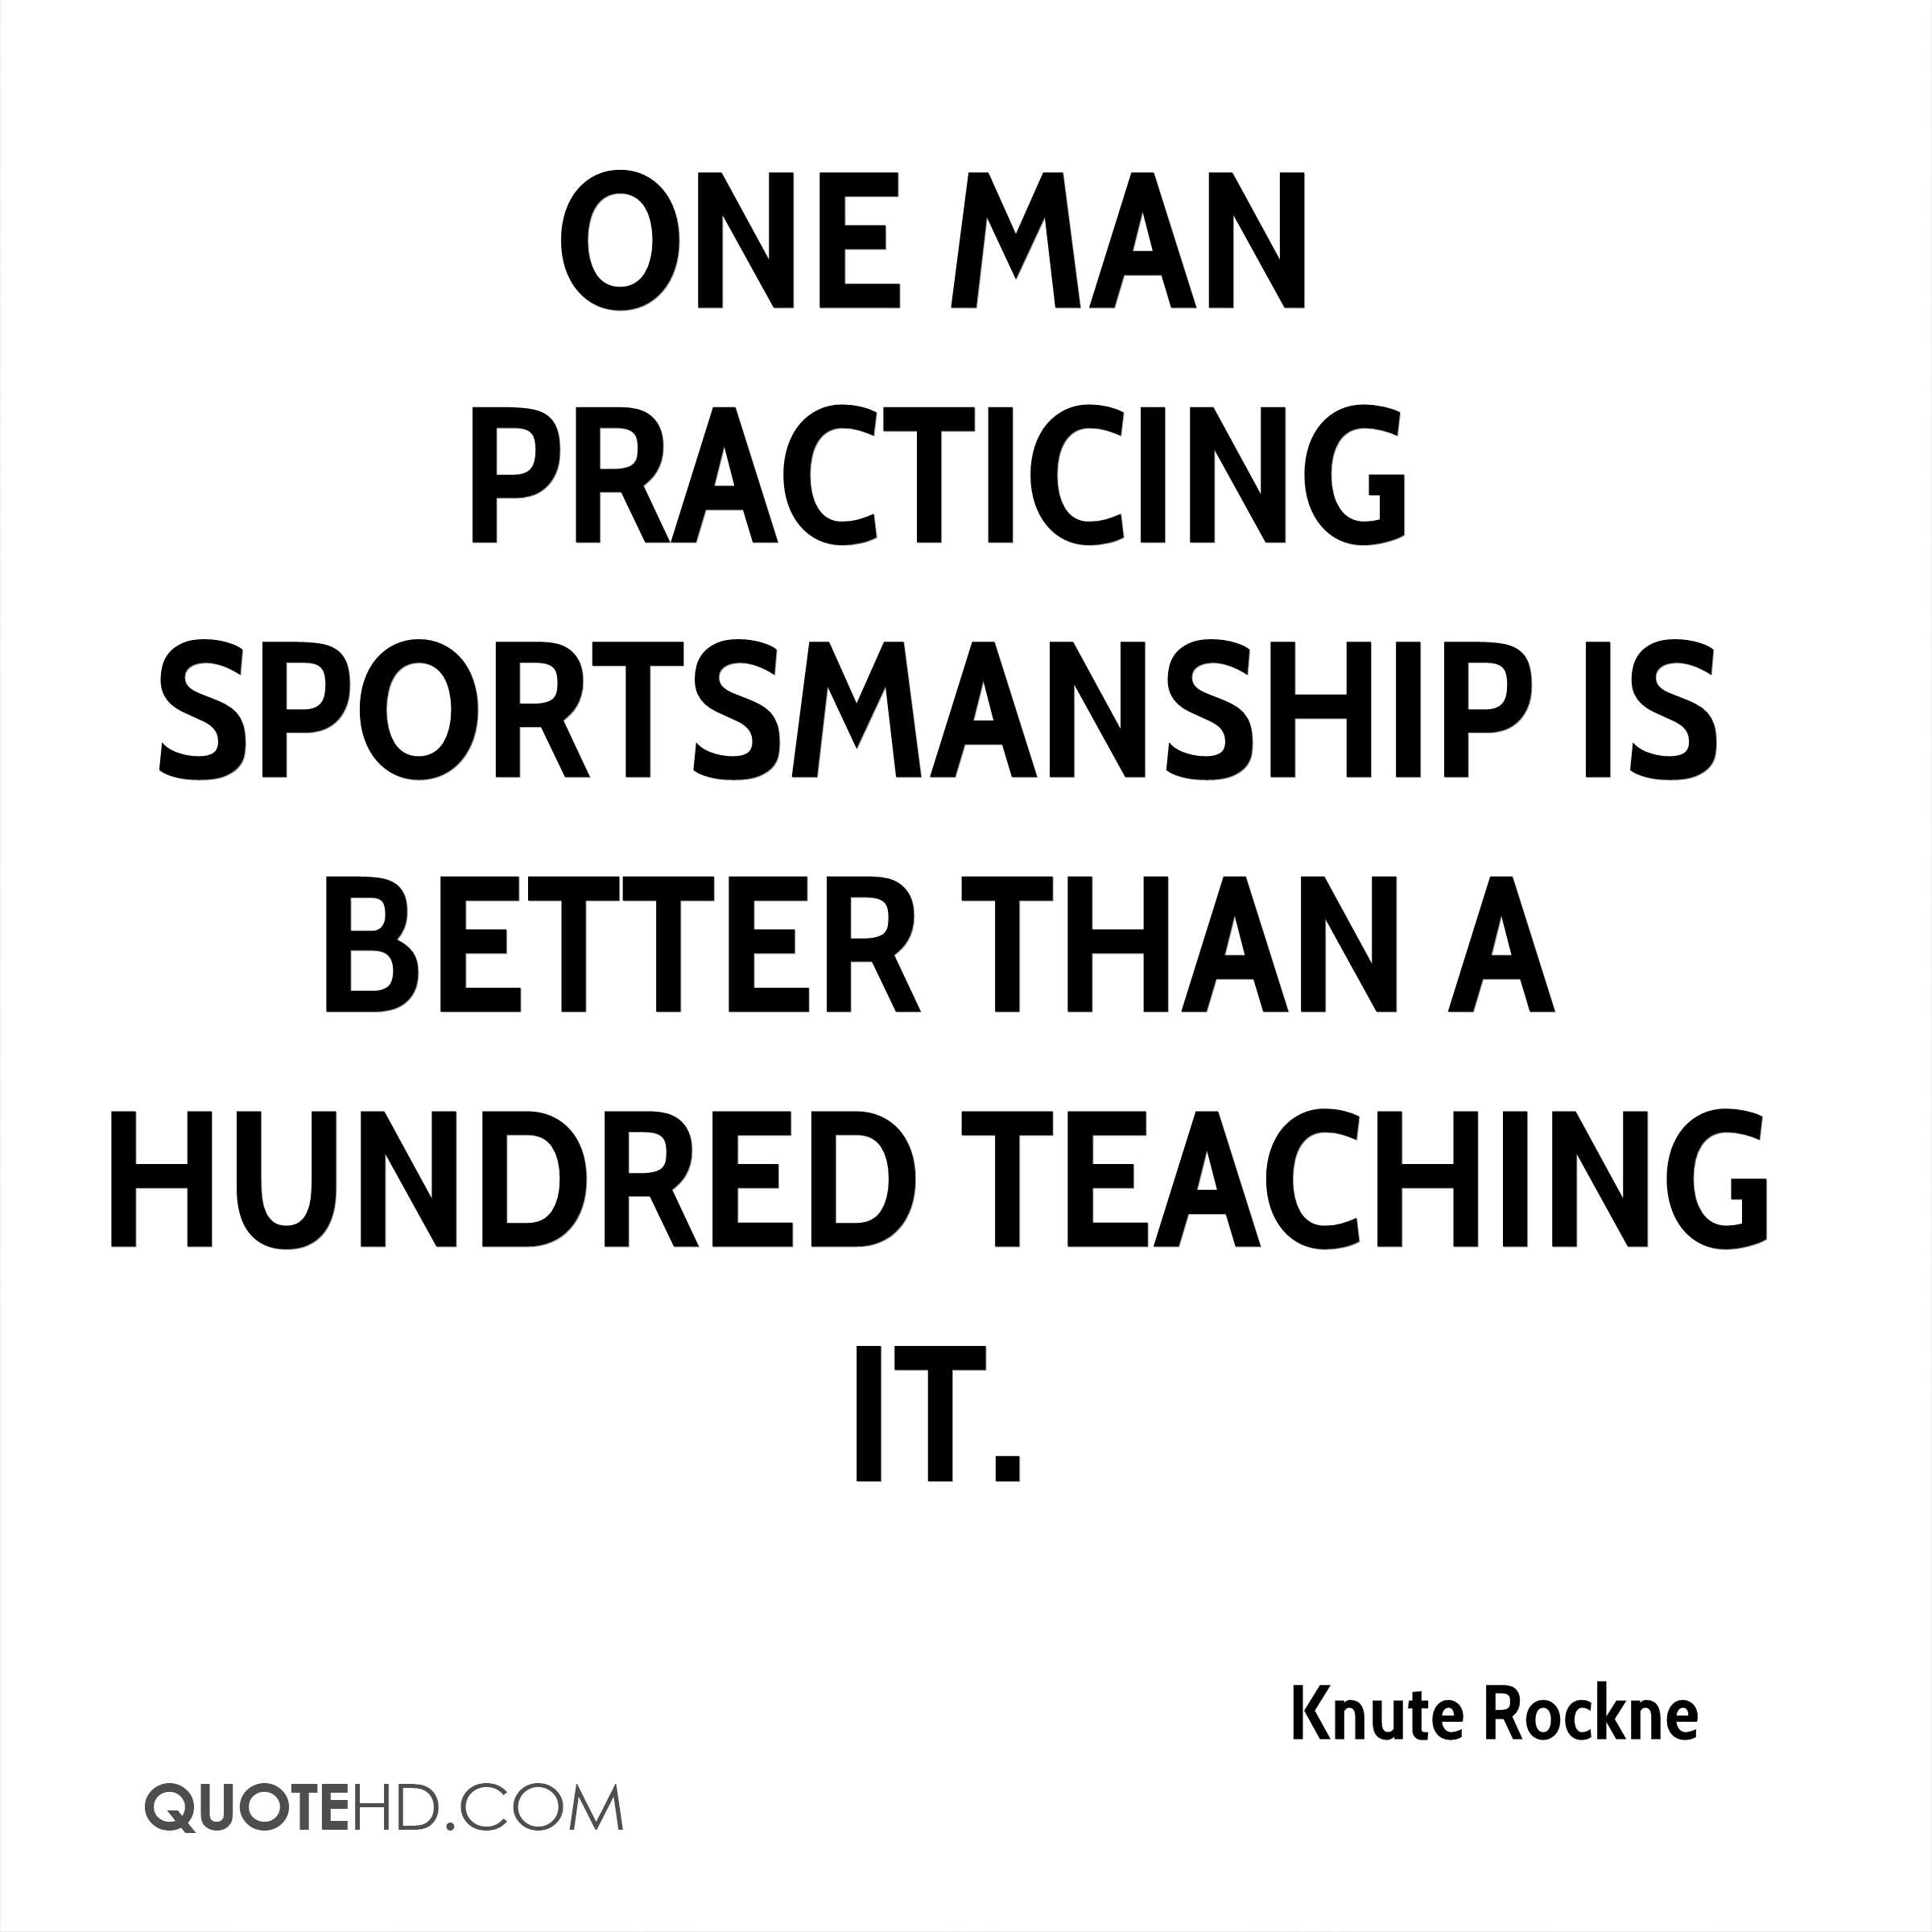 Sportsmanship Quotes Knute Rockne Quotes  Quotehd